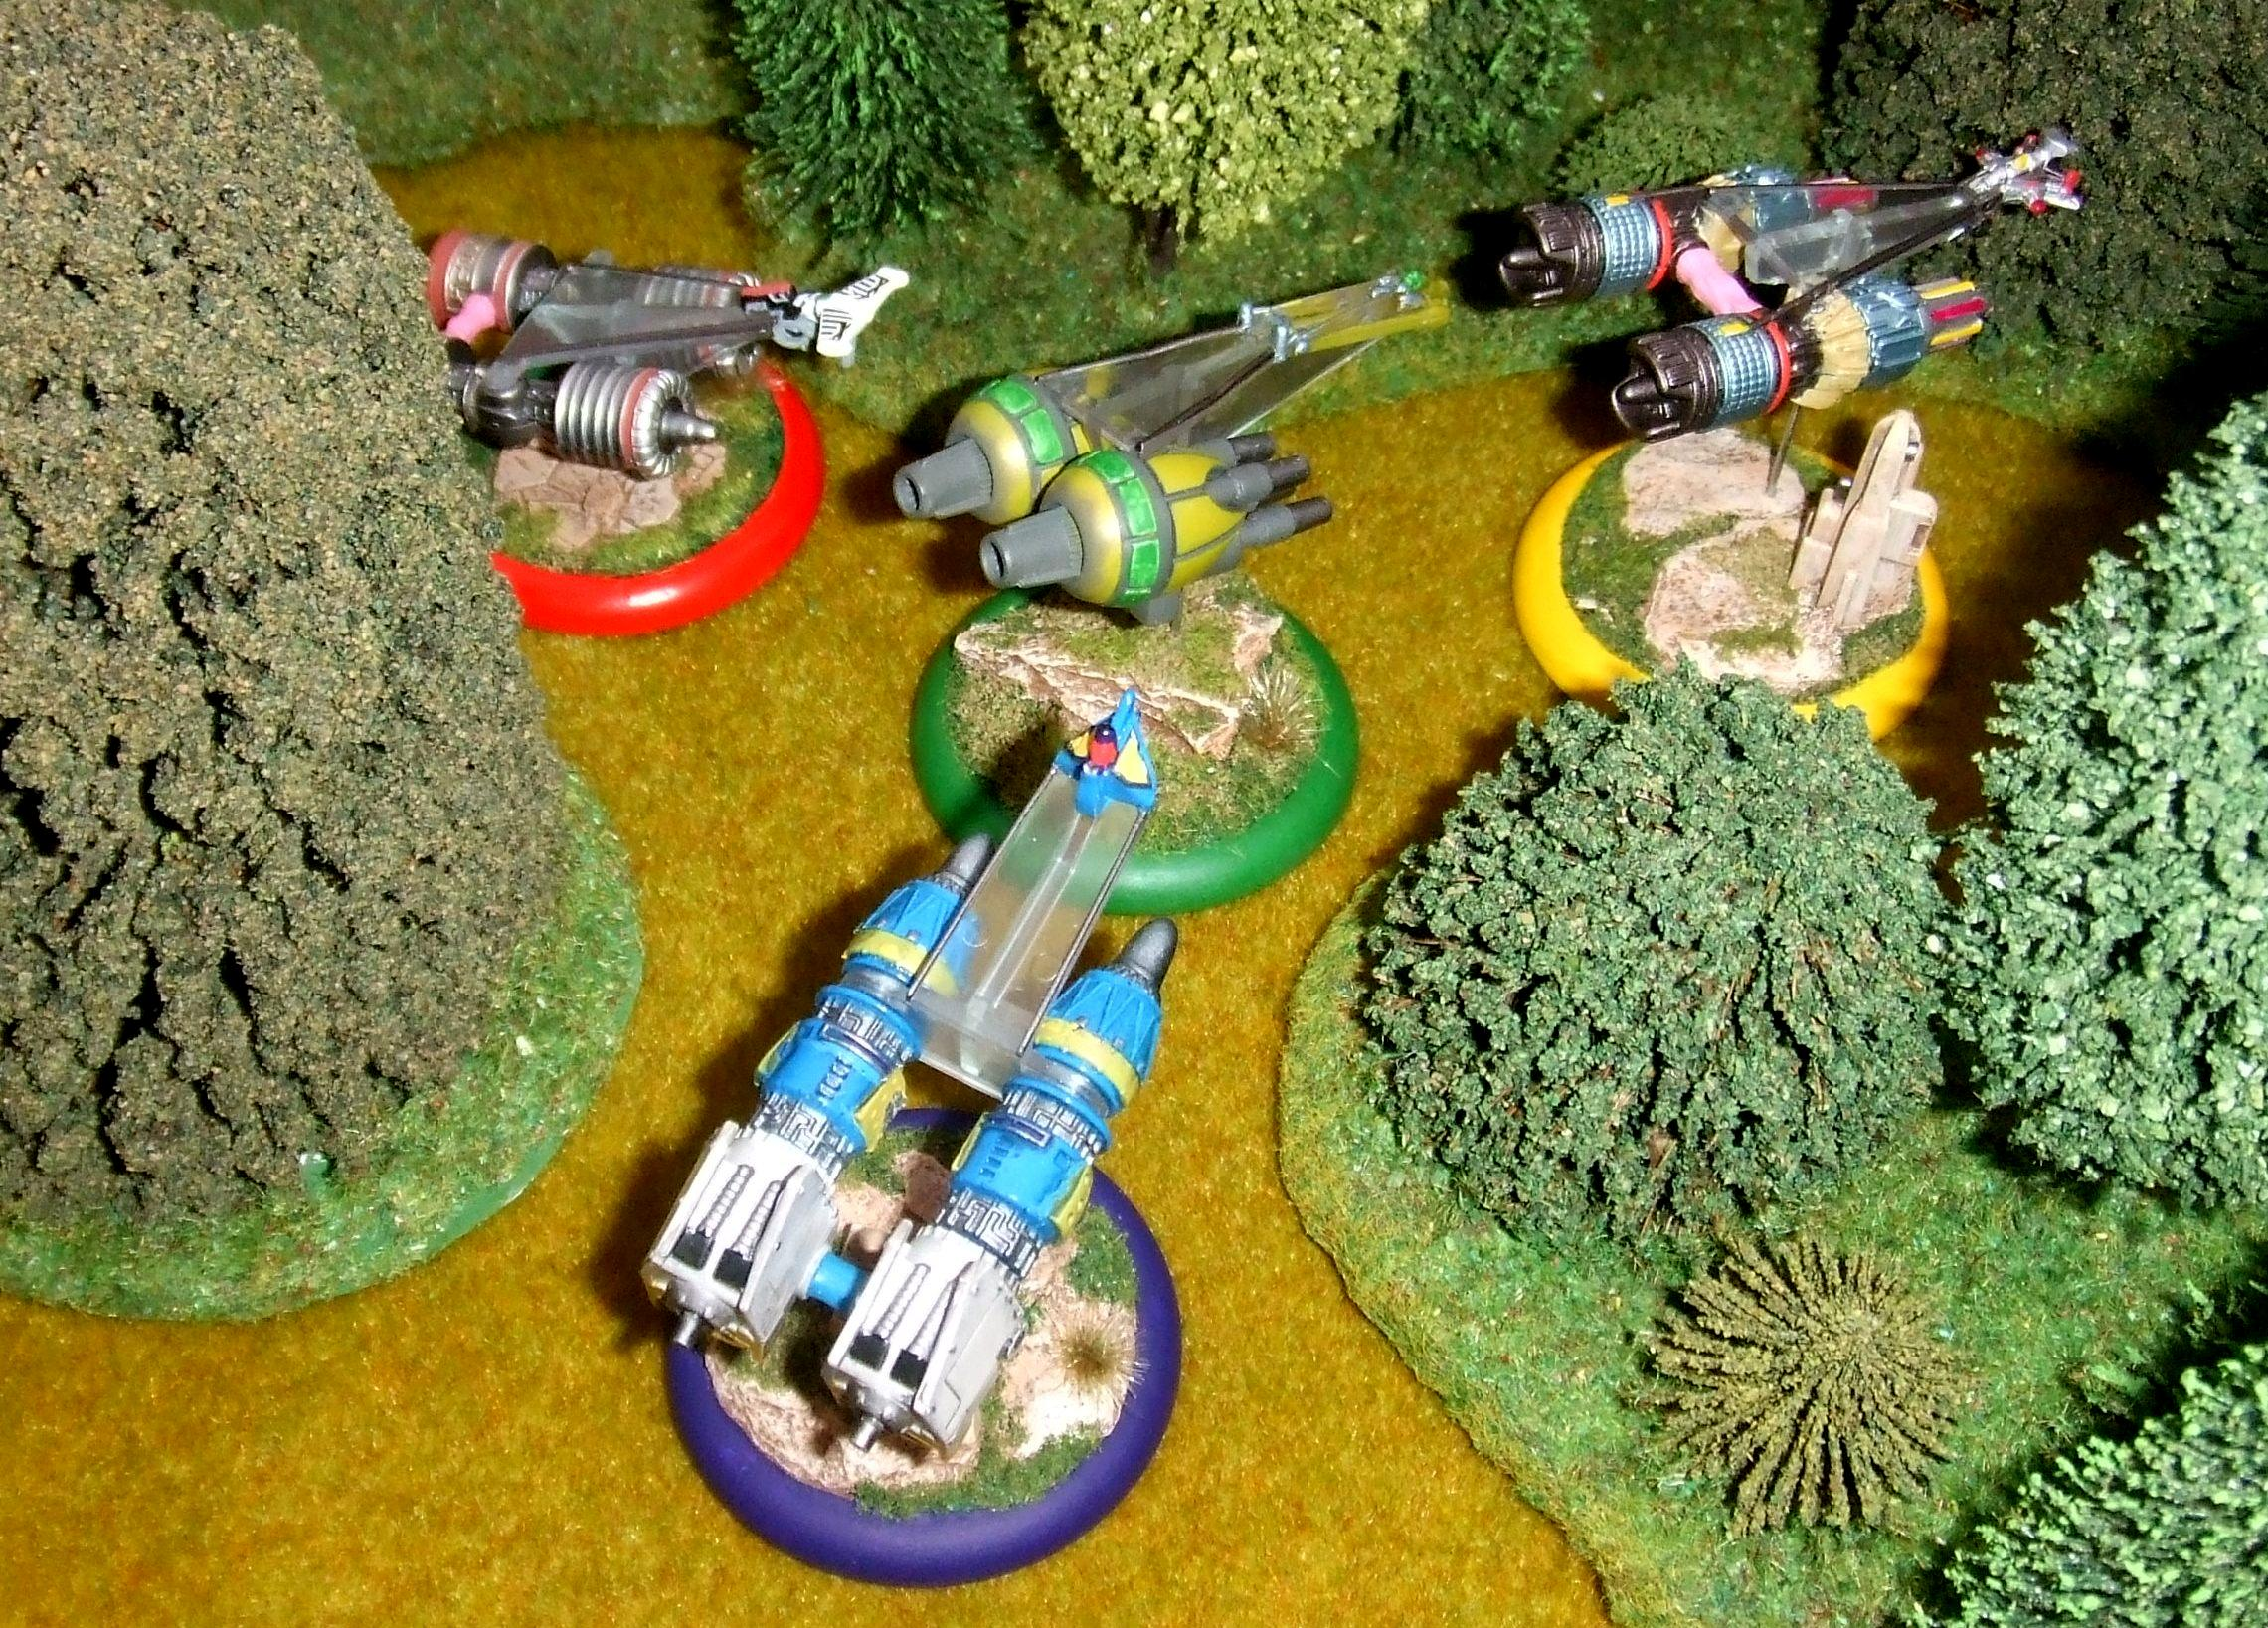 Ds Bases, Dungeon, Hand Cast, Naboo, New, Pod Race, Pod Racer, Pod Racing, Podrace, Rare, Resin, Roleplay, Rpg, Science-fiction, Spin Out, Spin-out, Star Wars, Starwars, Tabletop Gaming, Wargames Bakery, Wargamesbakery.co.uk, Wgb